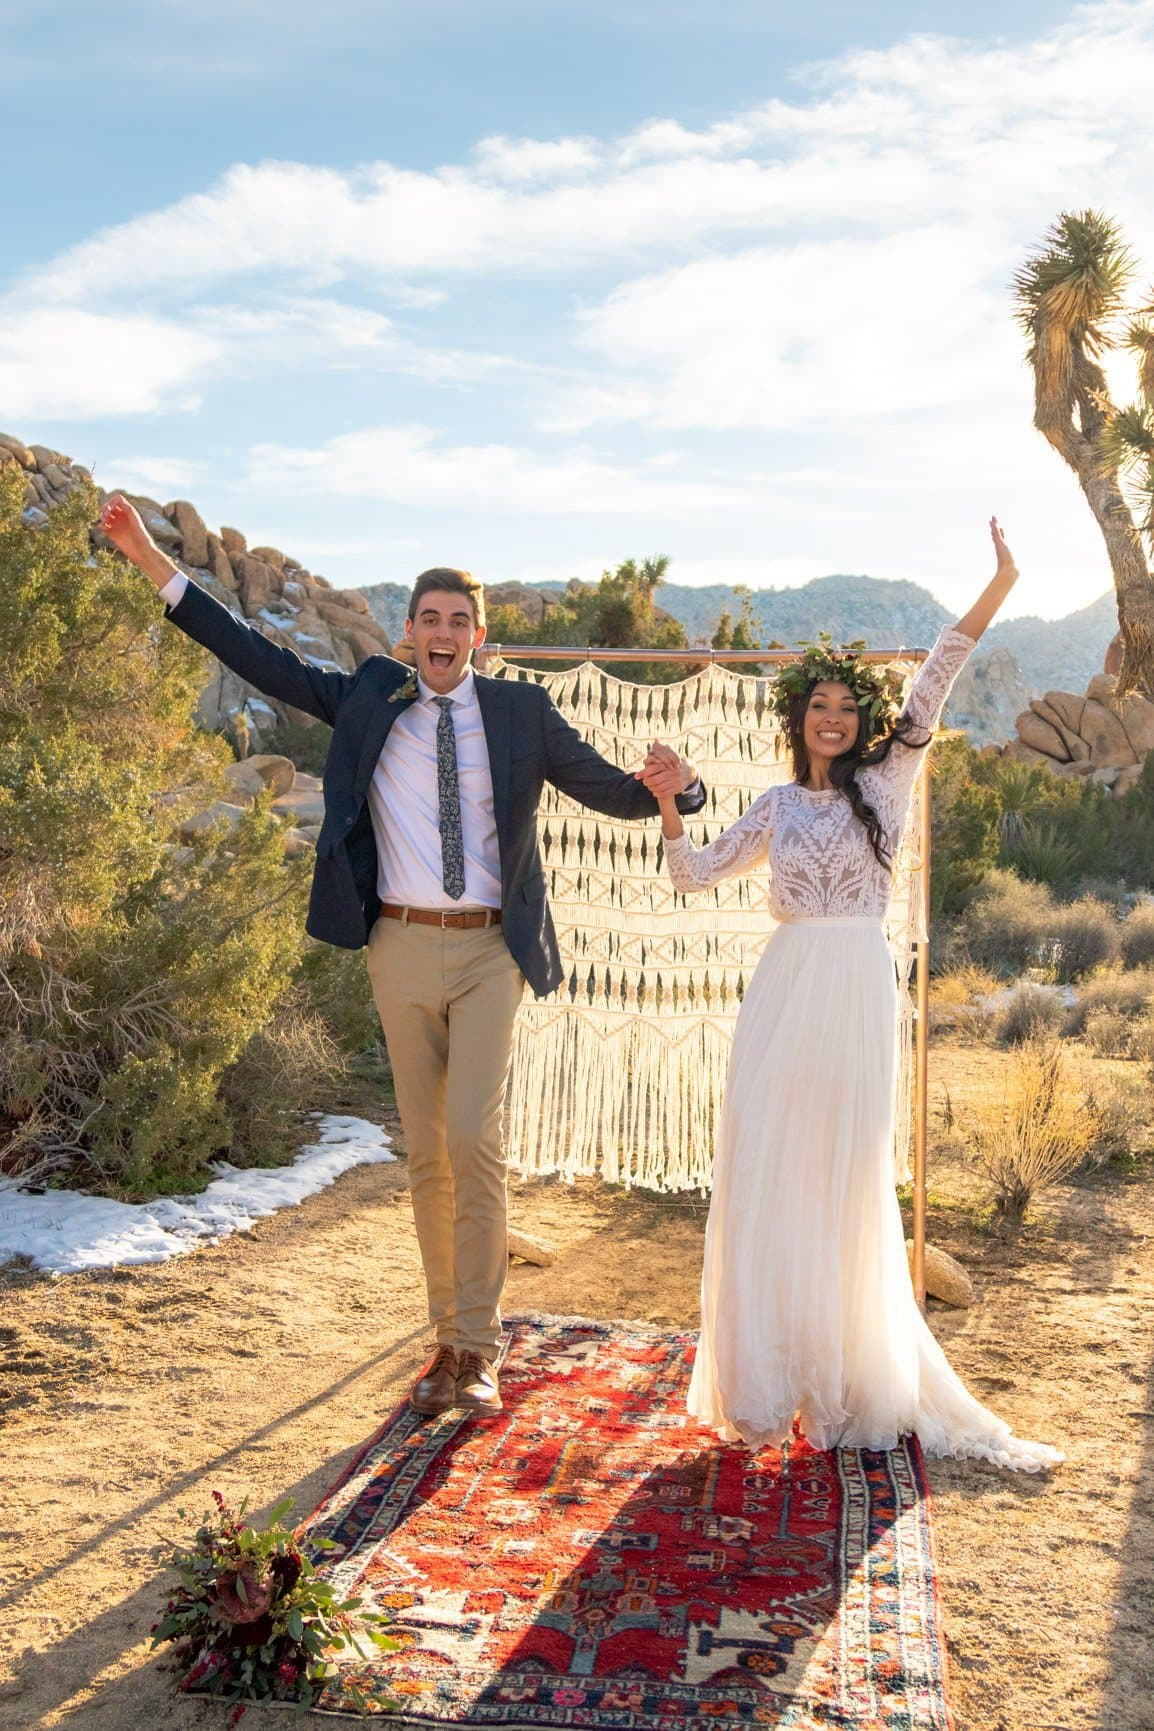 elopement celebration for their joshua tree wedding day